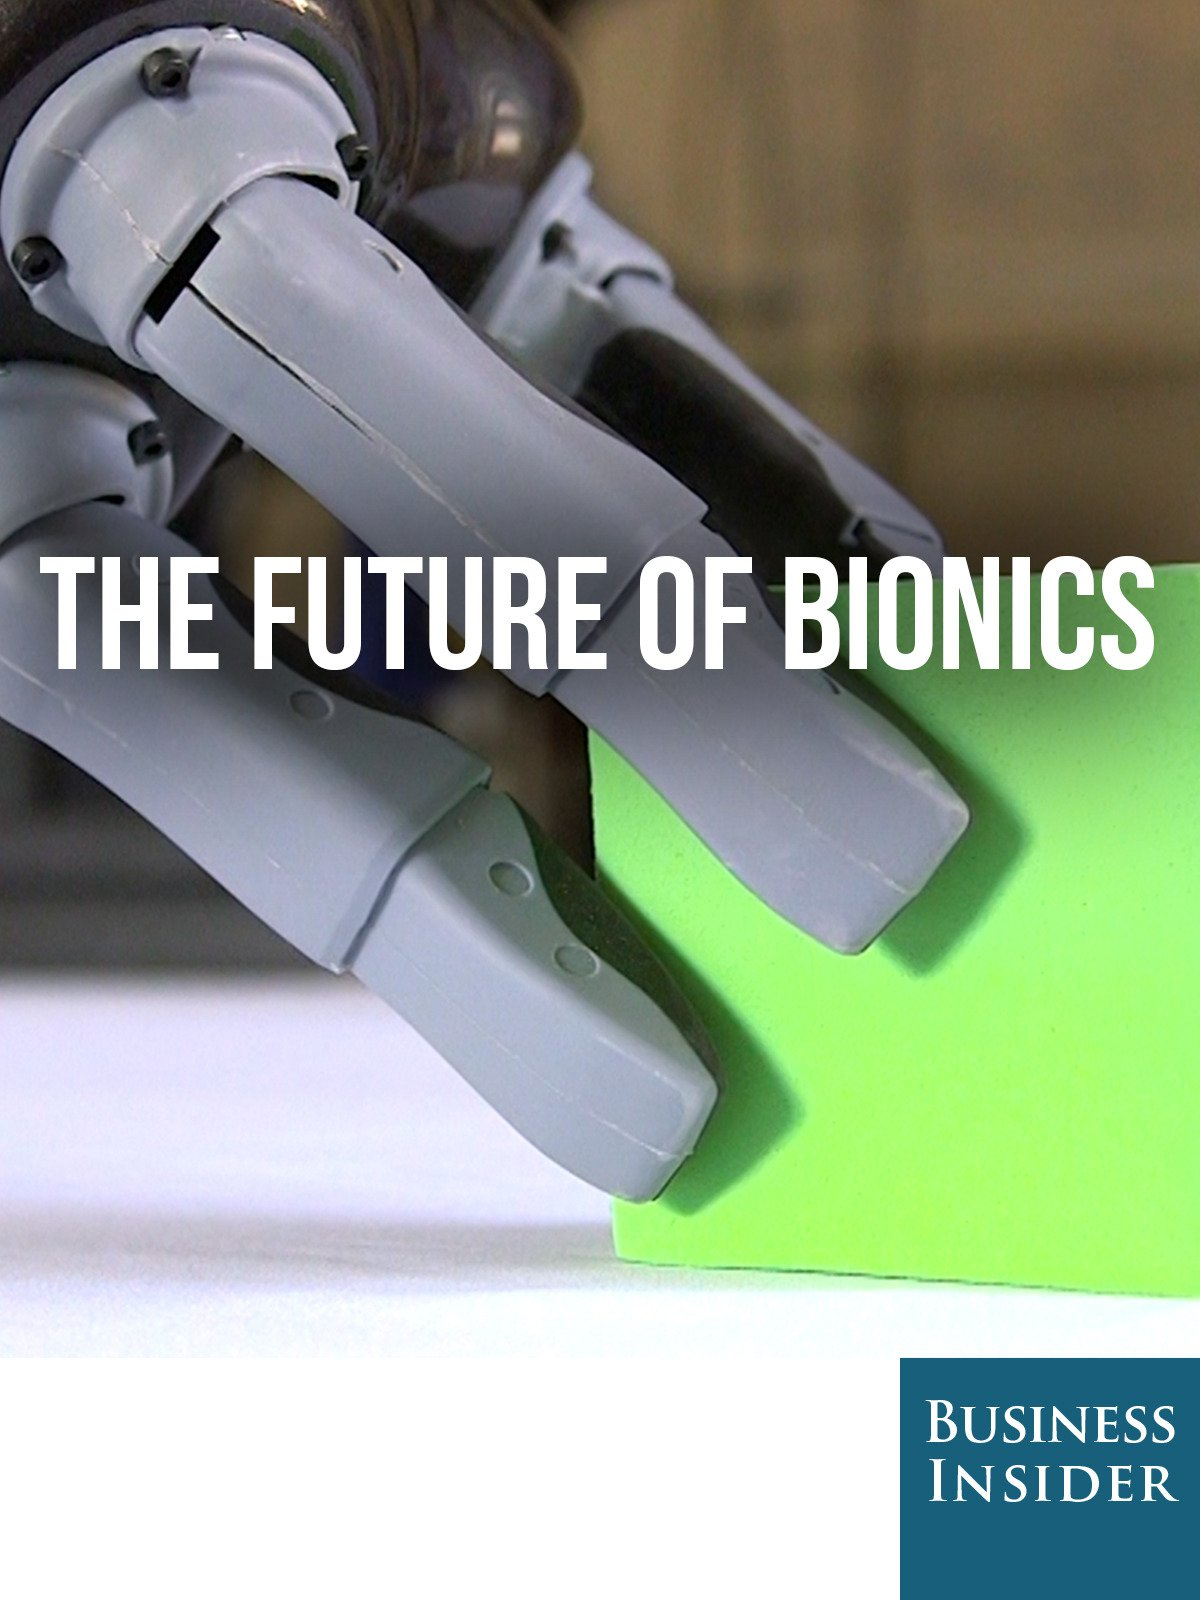 The Future of Bionics